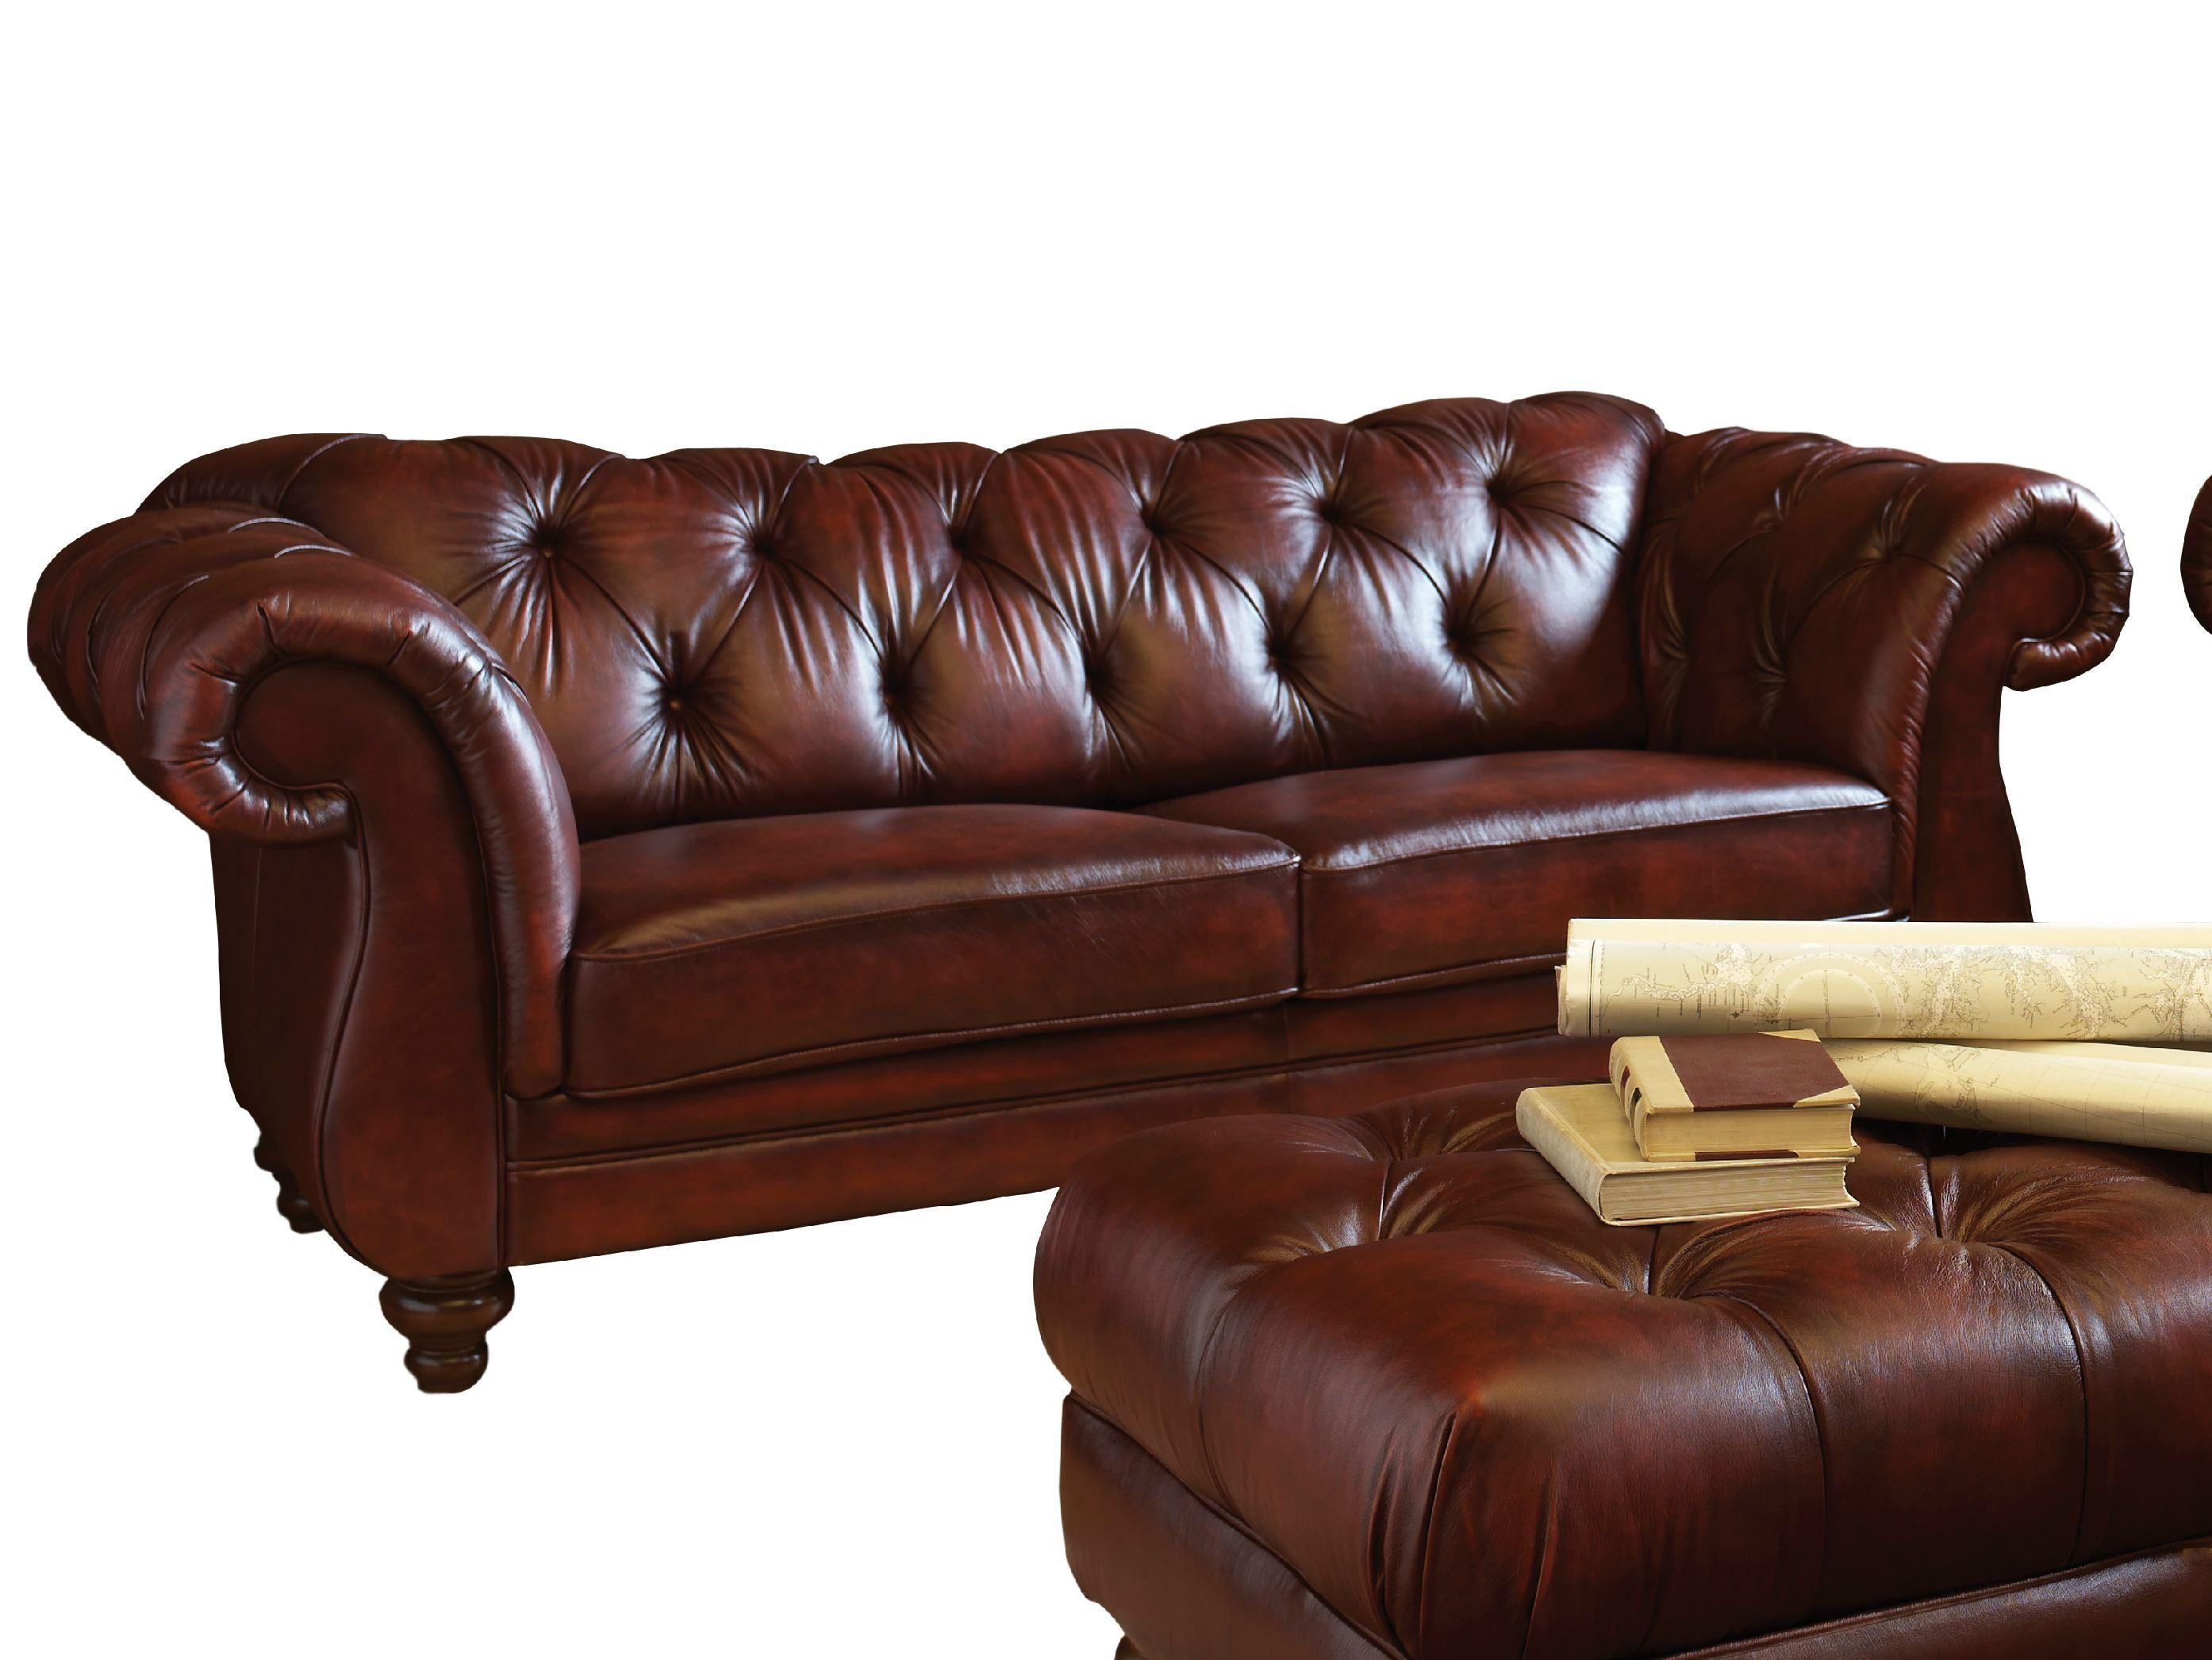 Dark Brown Color Modern Two Seater Leather Tufted Sofa With Intended For Brown Leather Tufted Sofas (Image 3 of 20)